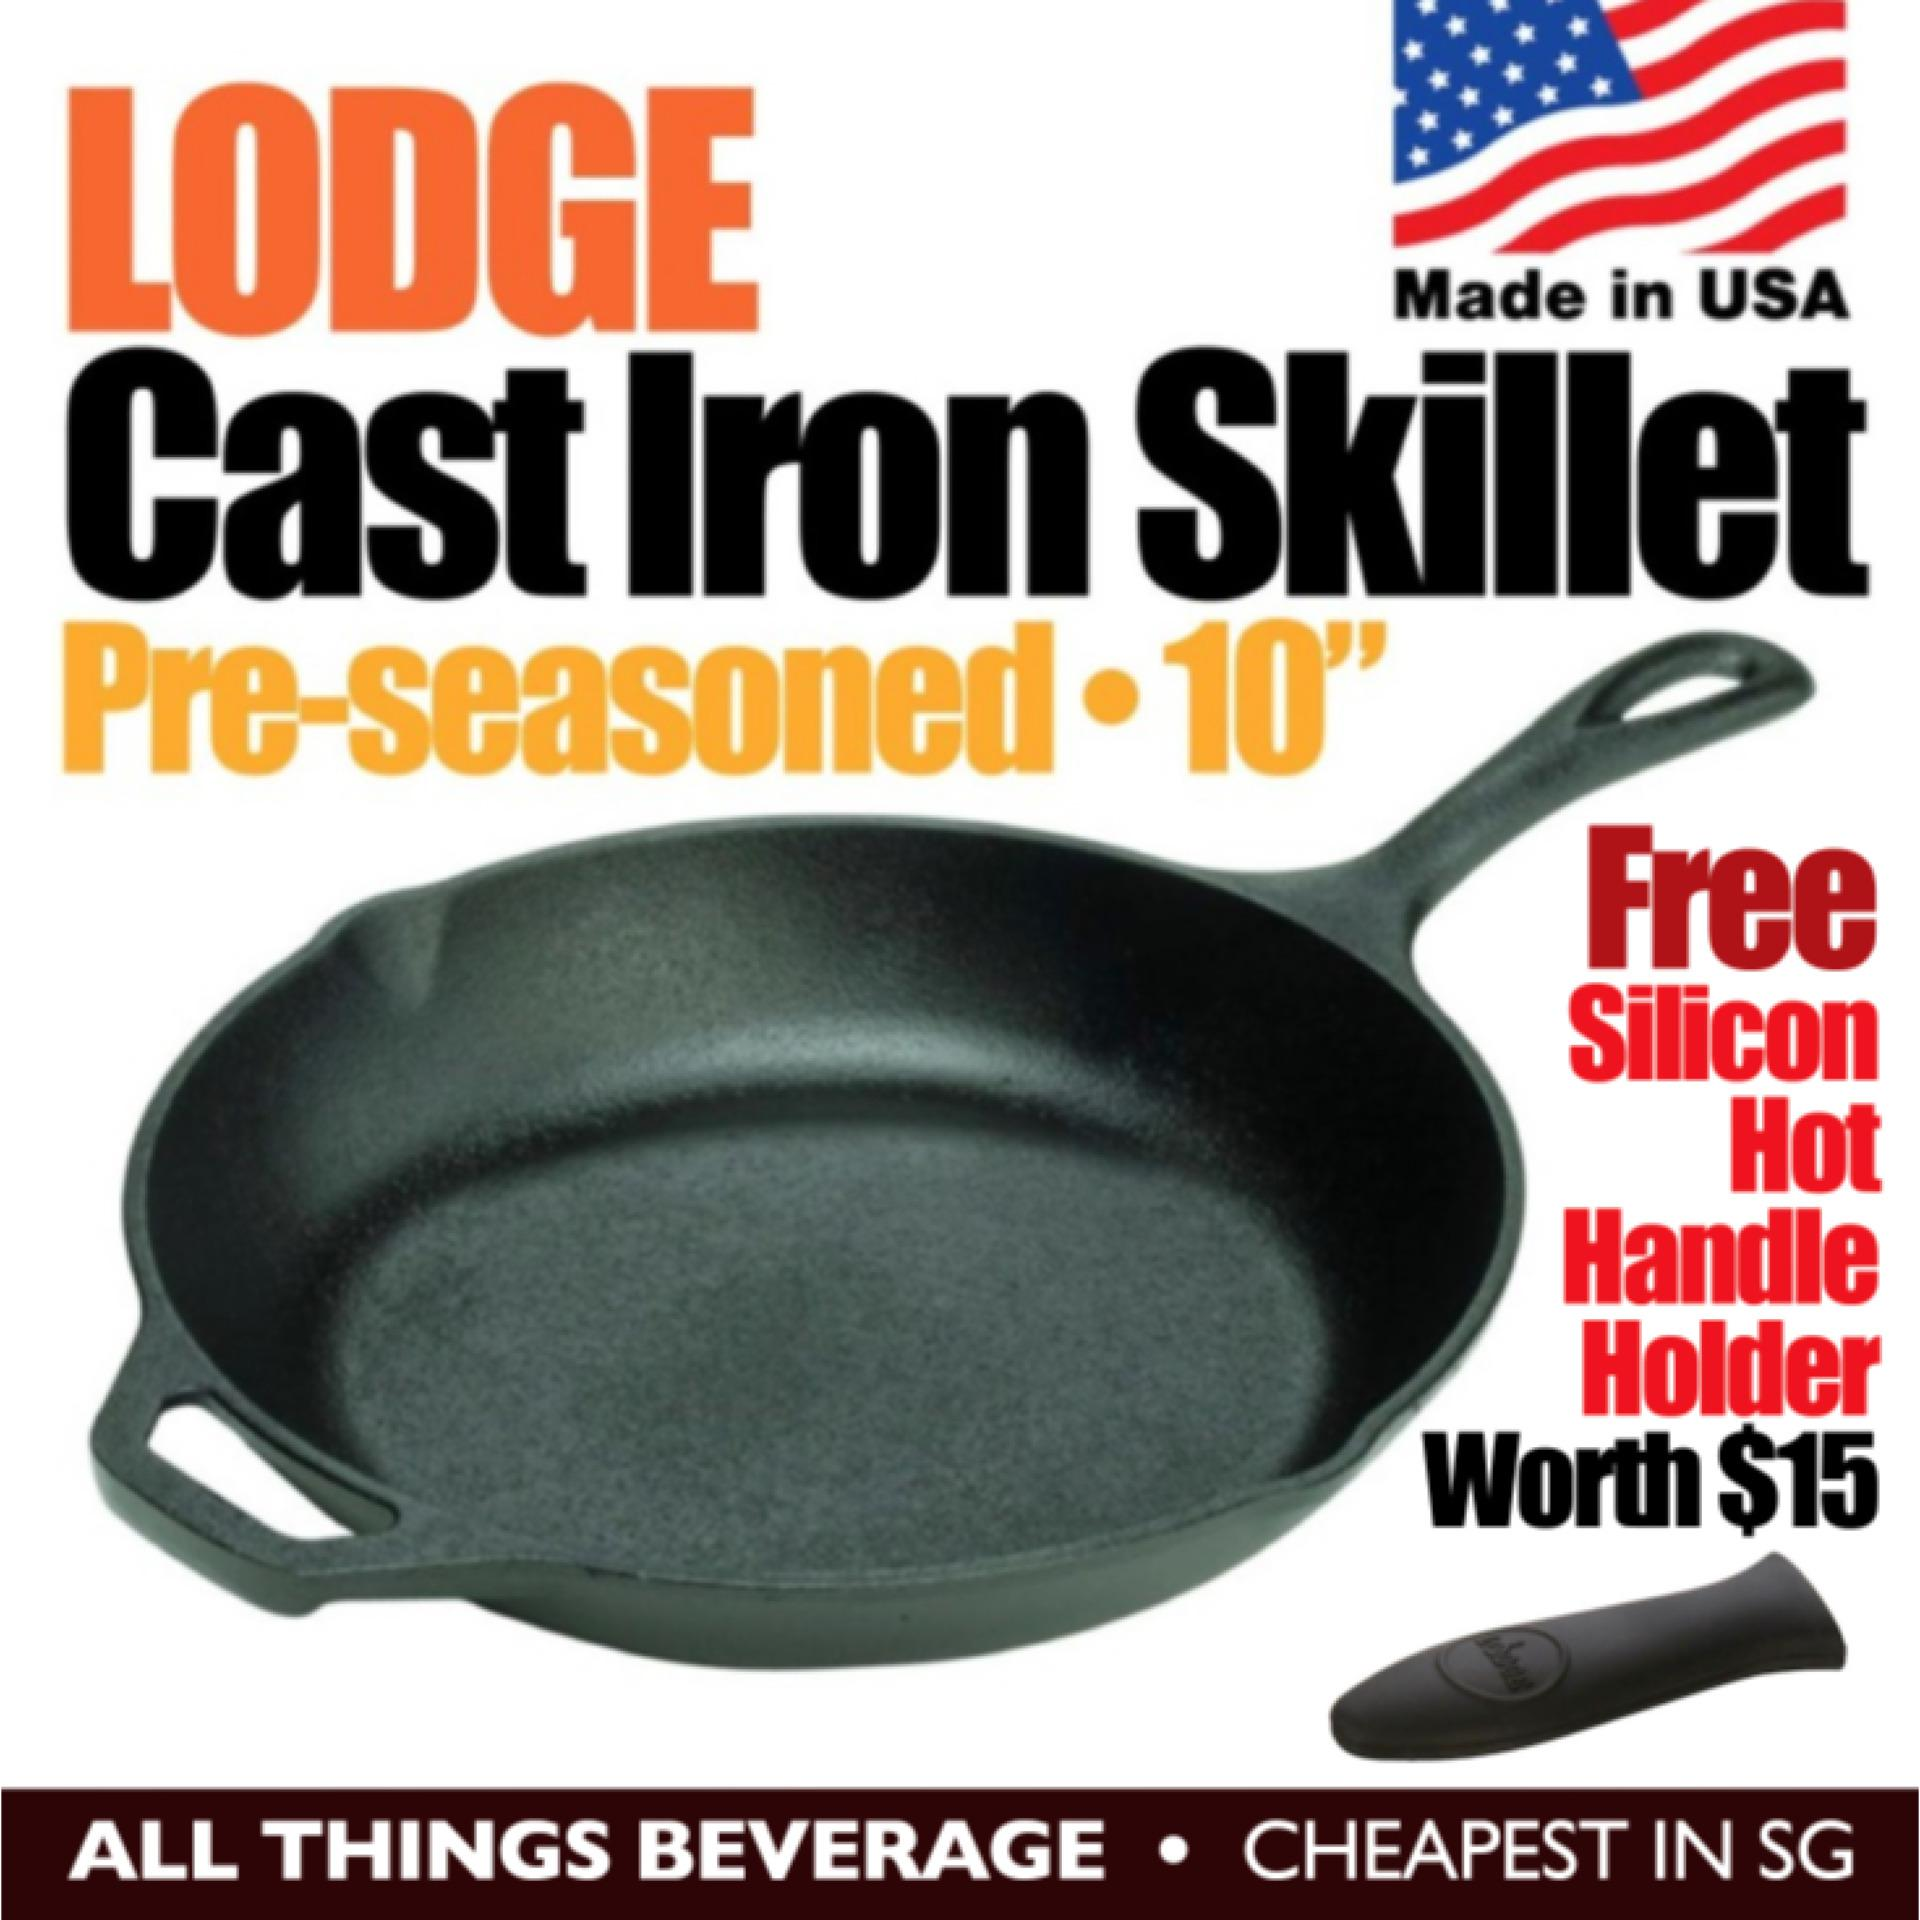 Lodge Cast Iron Round Skillet Grill Pan Pre Seasoned 10 25cm Free Silicon Hot Handle Holder